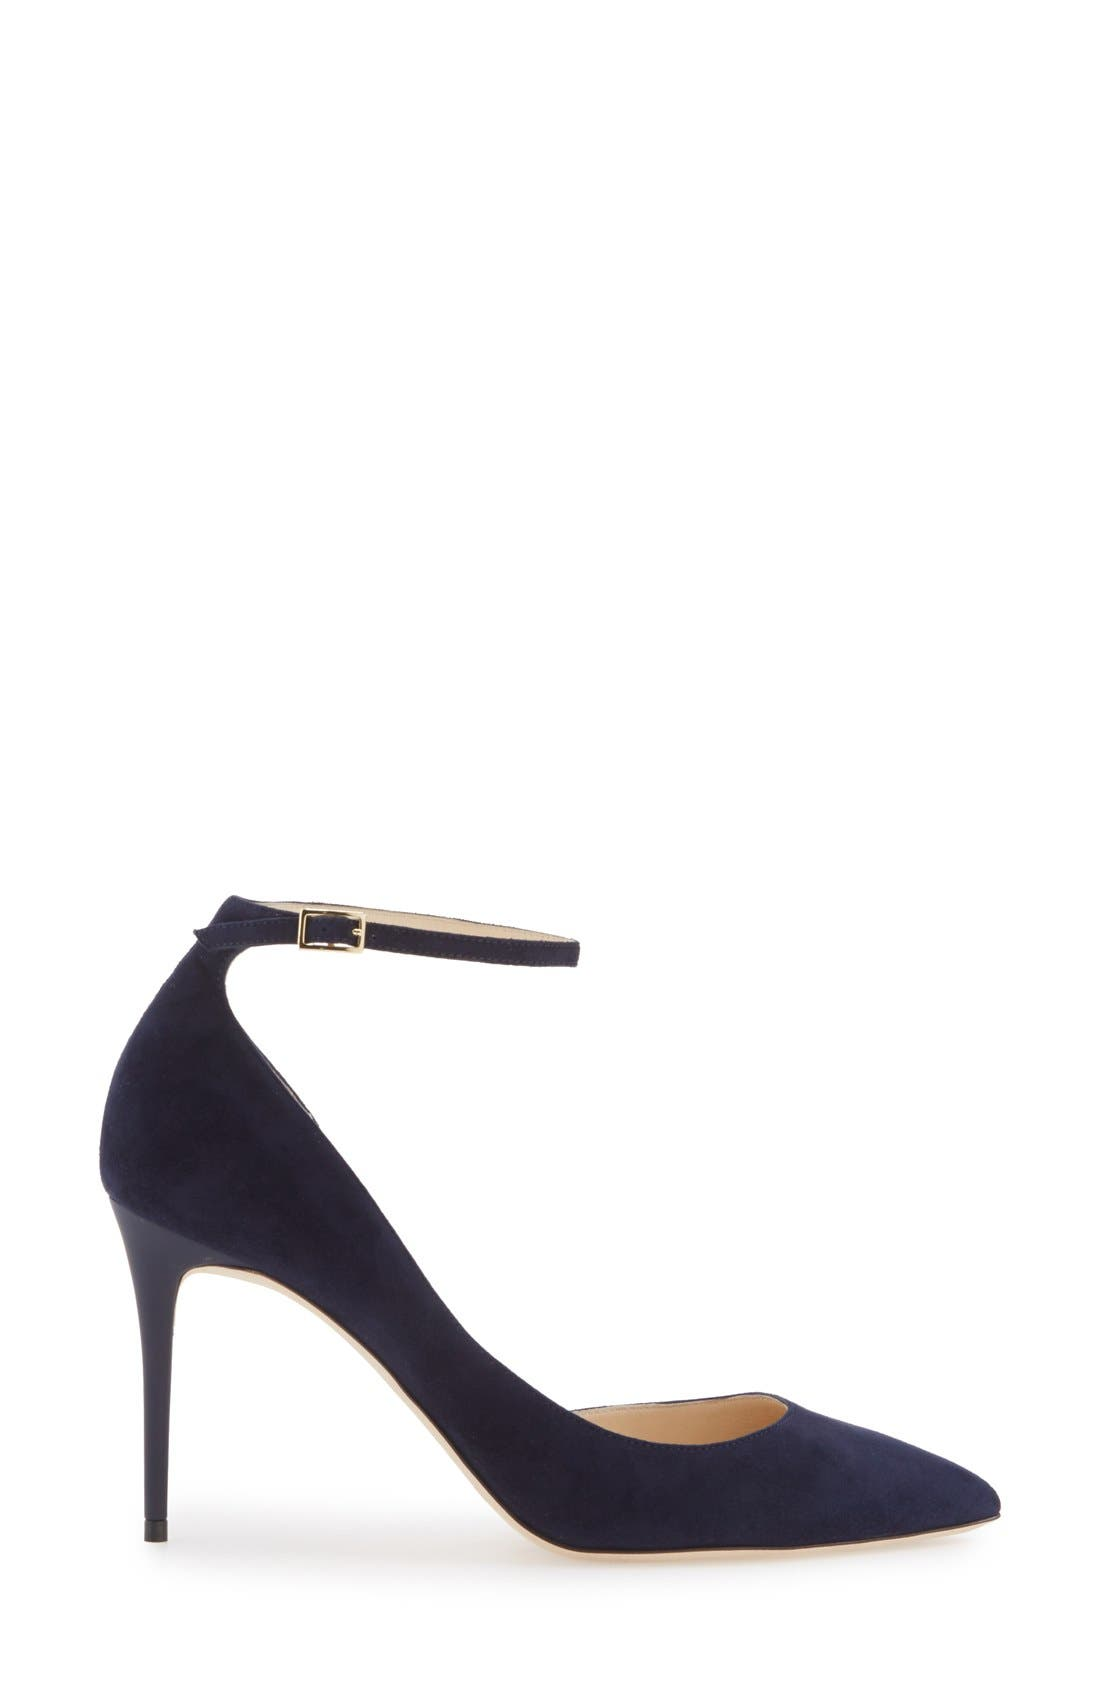 'Lucy' Half d'Orsay Pointy Toe Pump,                             Alternate thumbnail 13, color,